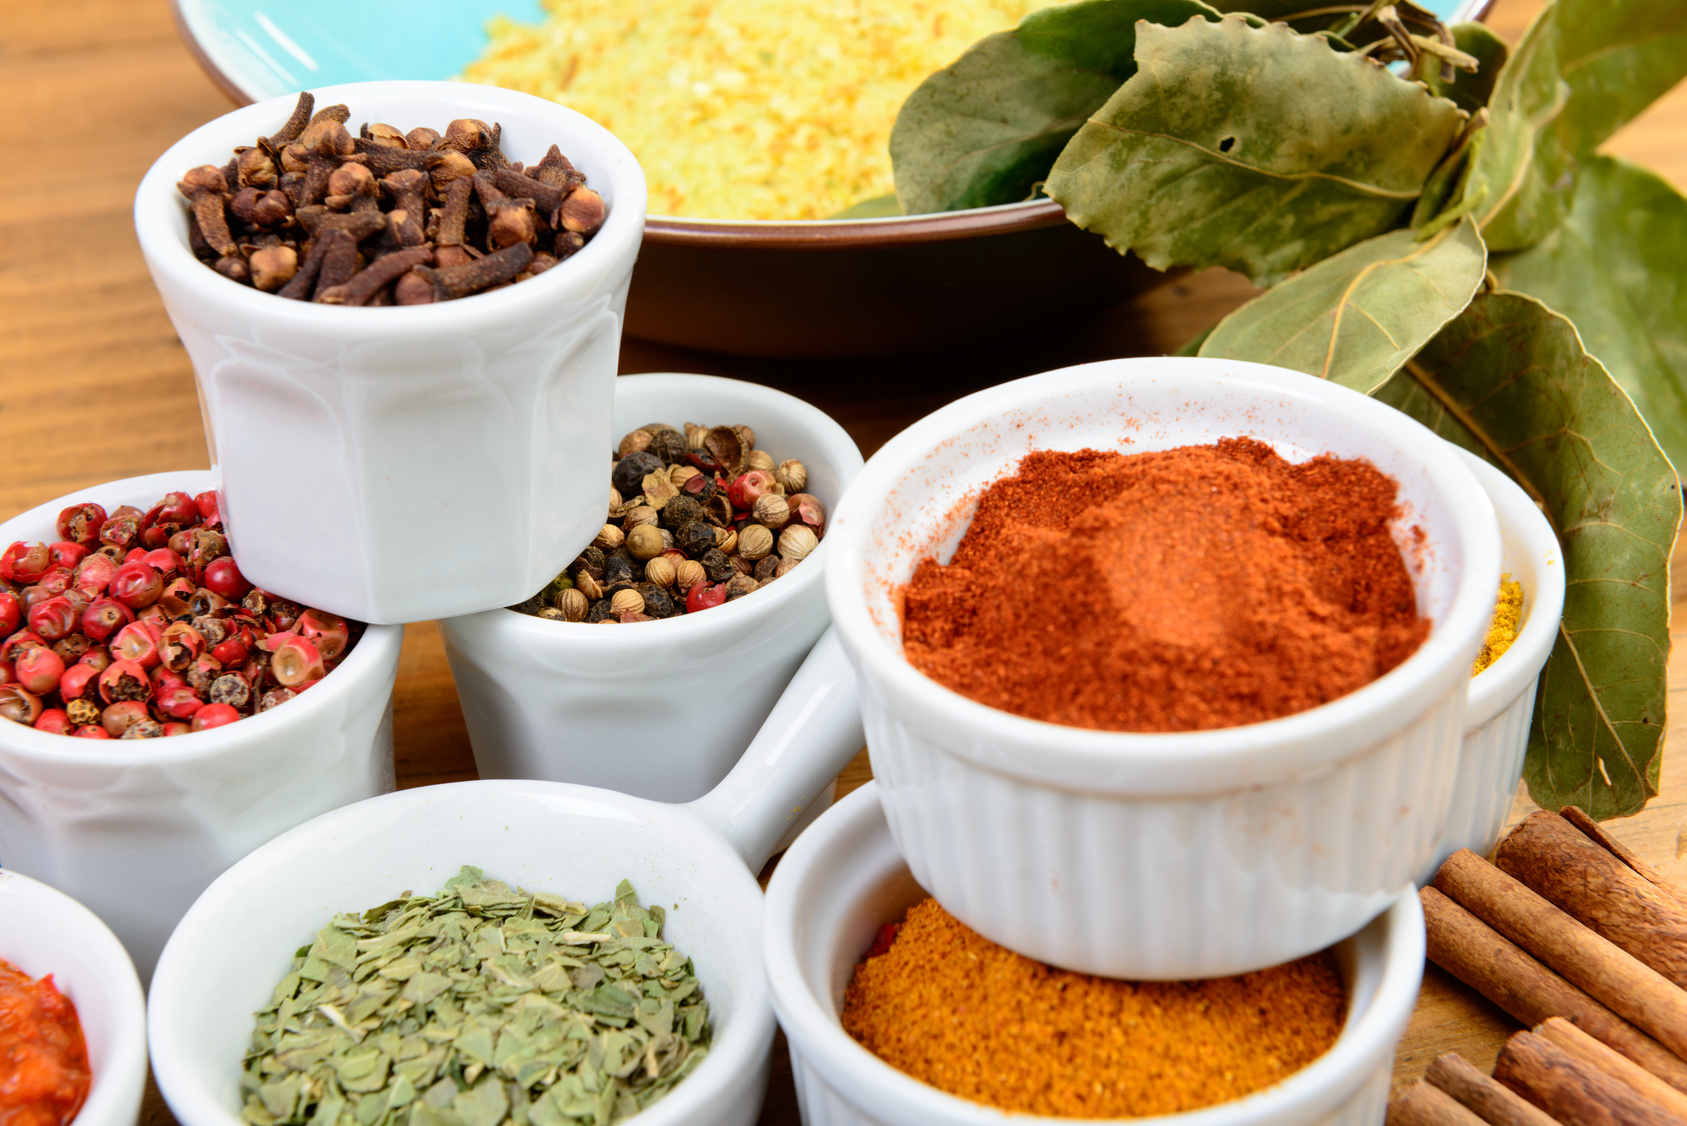 Spice up your life… and health!